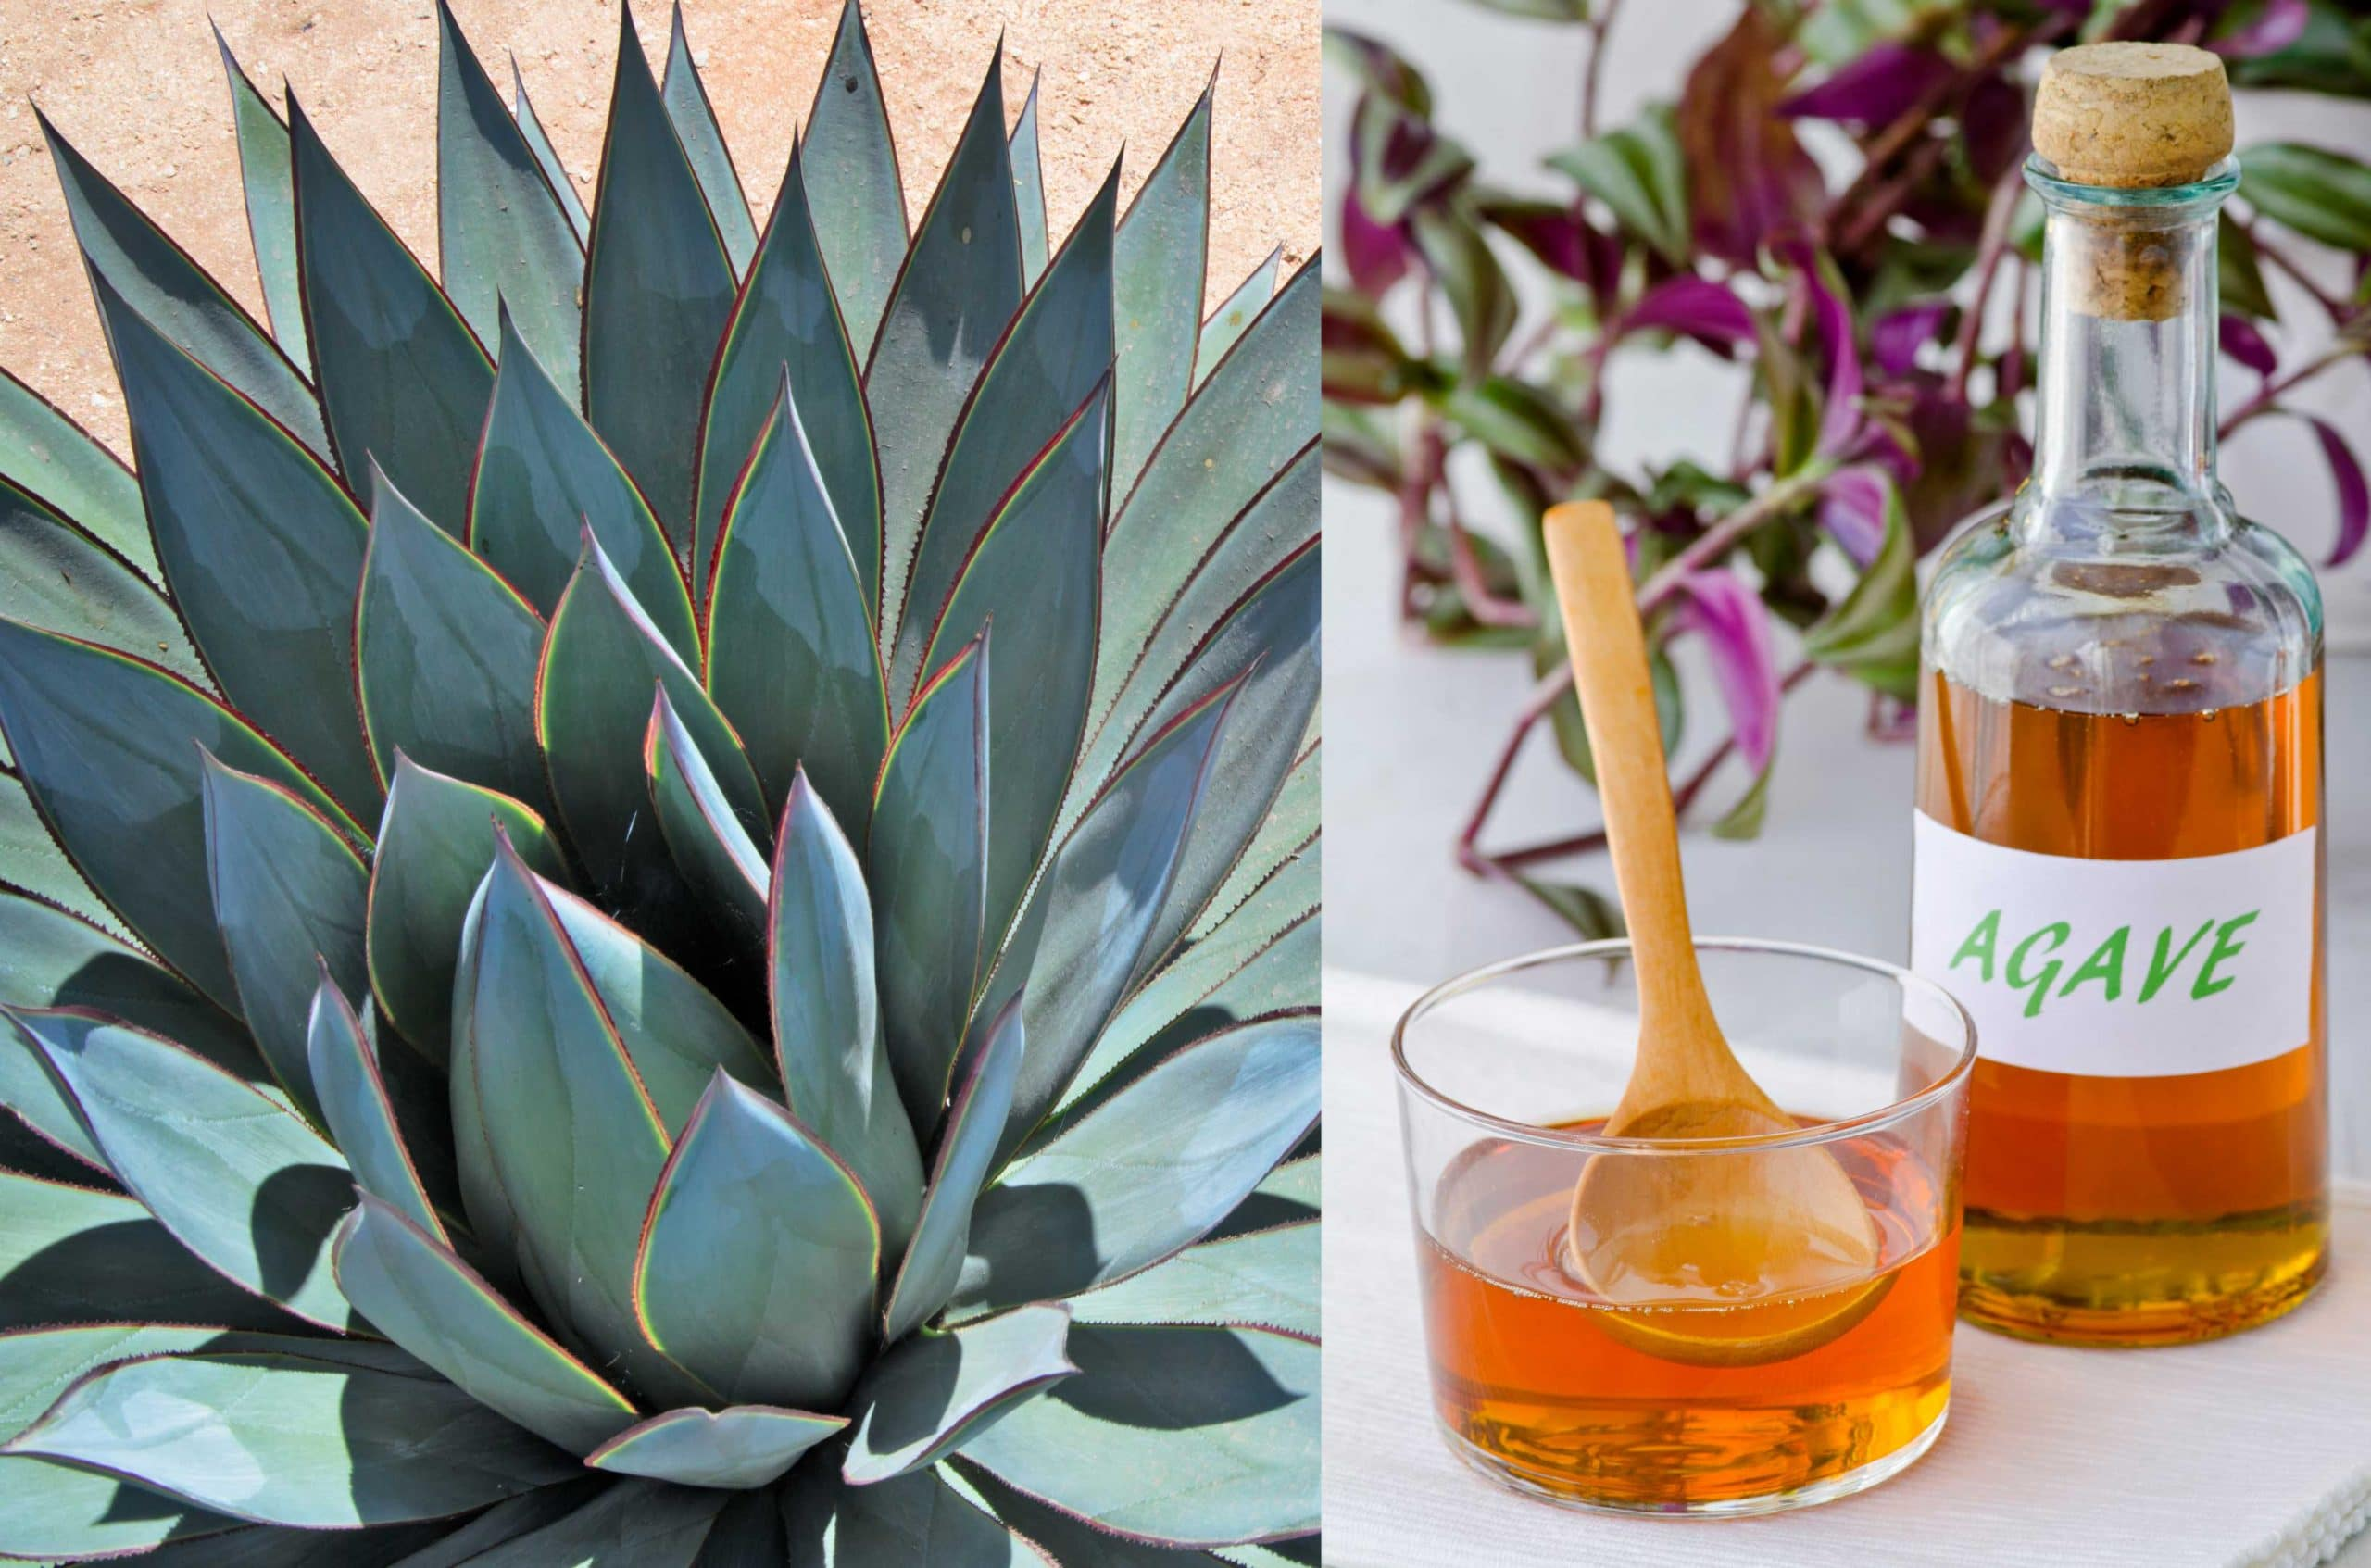 Photo  of an agave plant in the wild and next to that photo is a photo of a glass bottle with a cork of agave nectar and next to the bottle is a small glass bowl of nectar with a wooden spoon in the bowl.